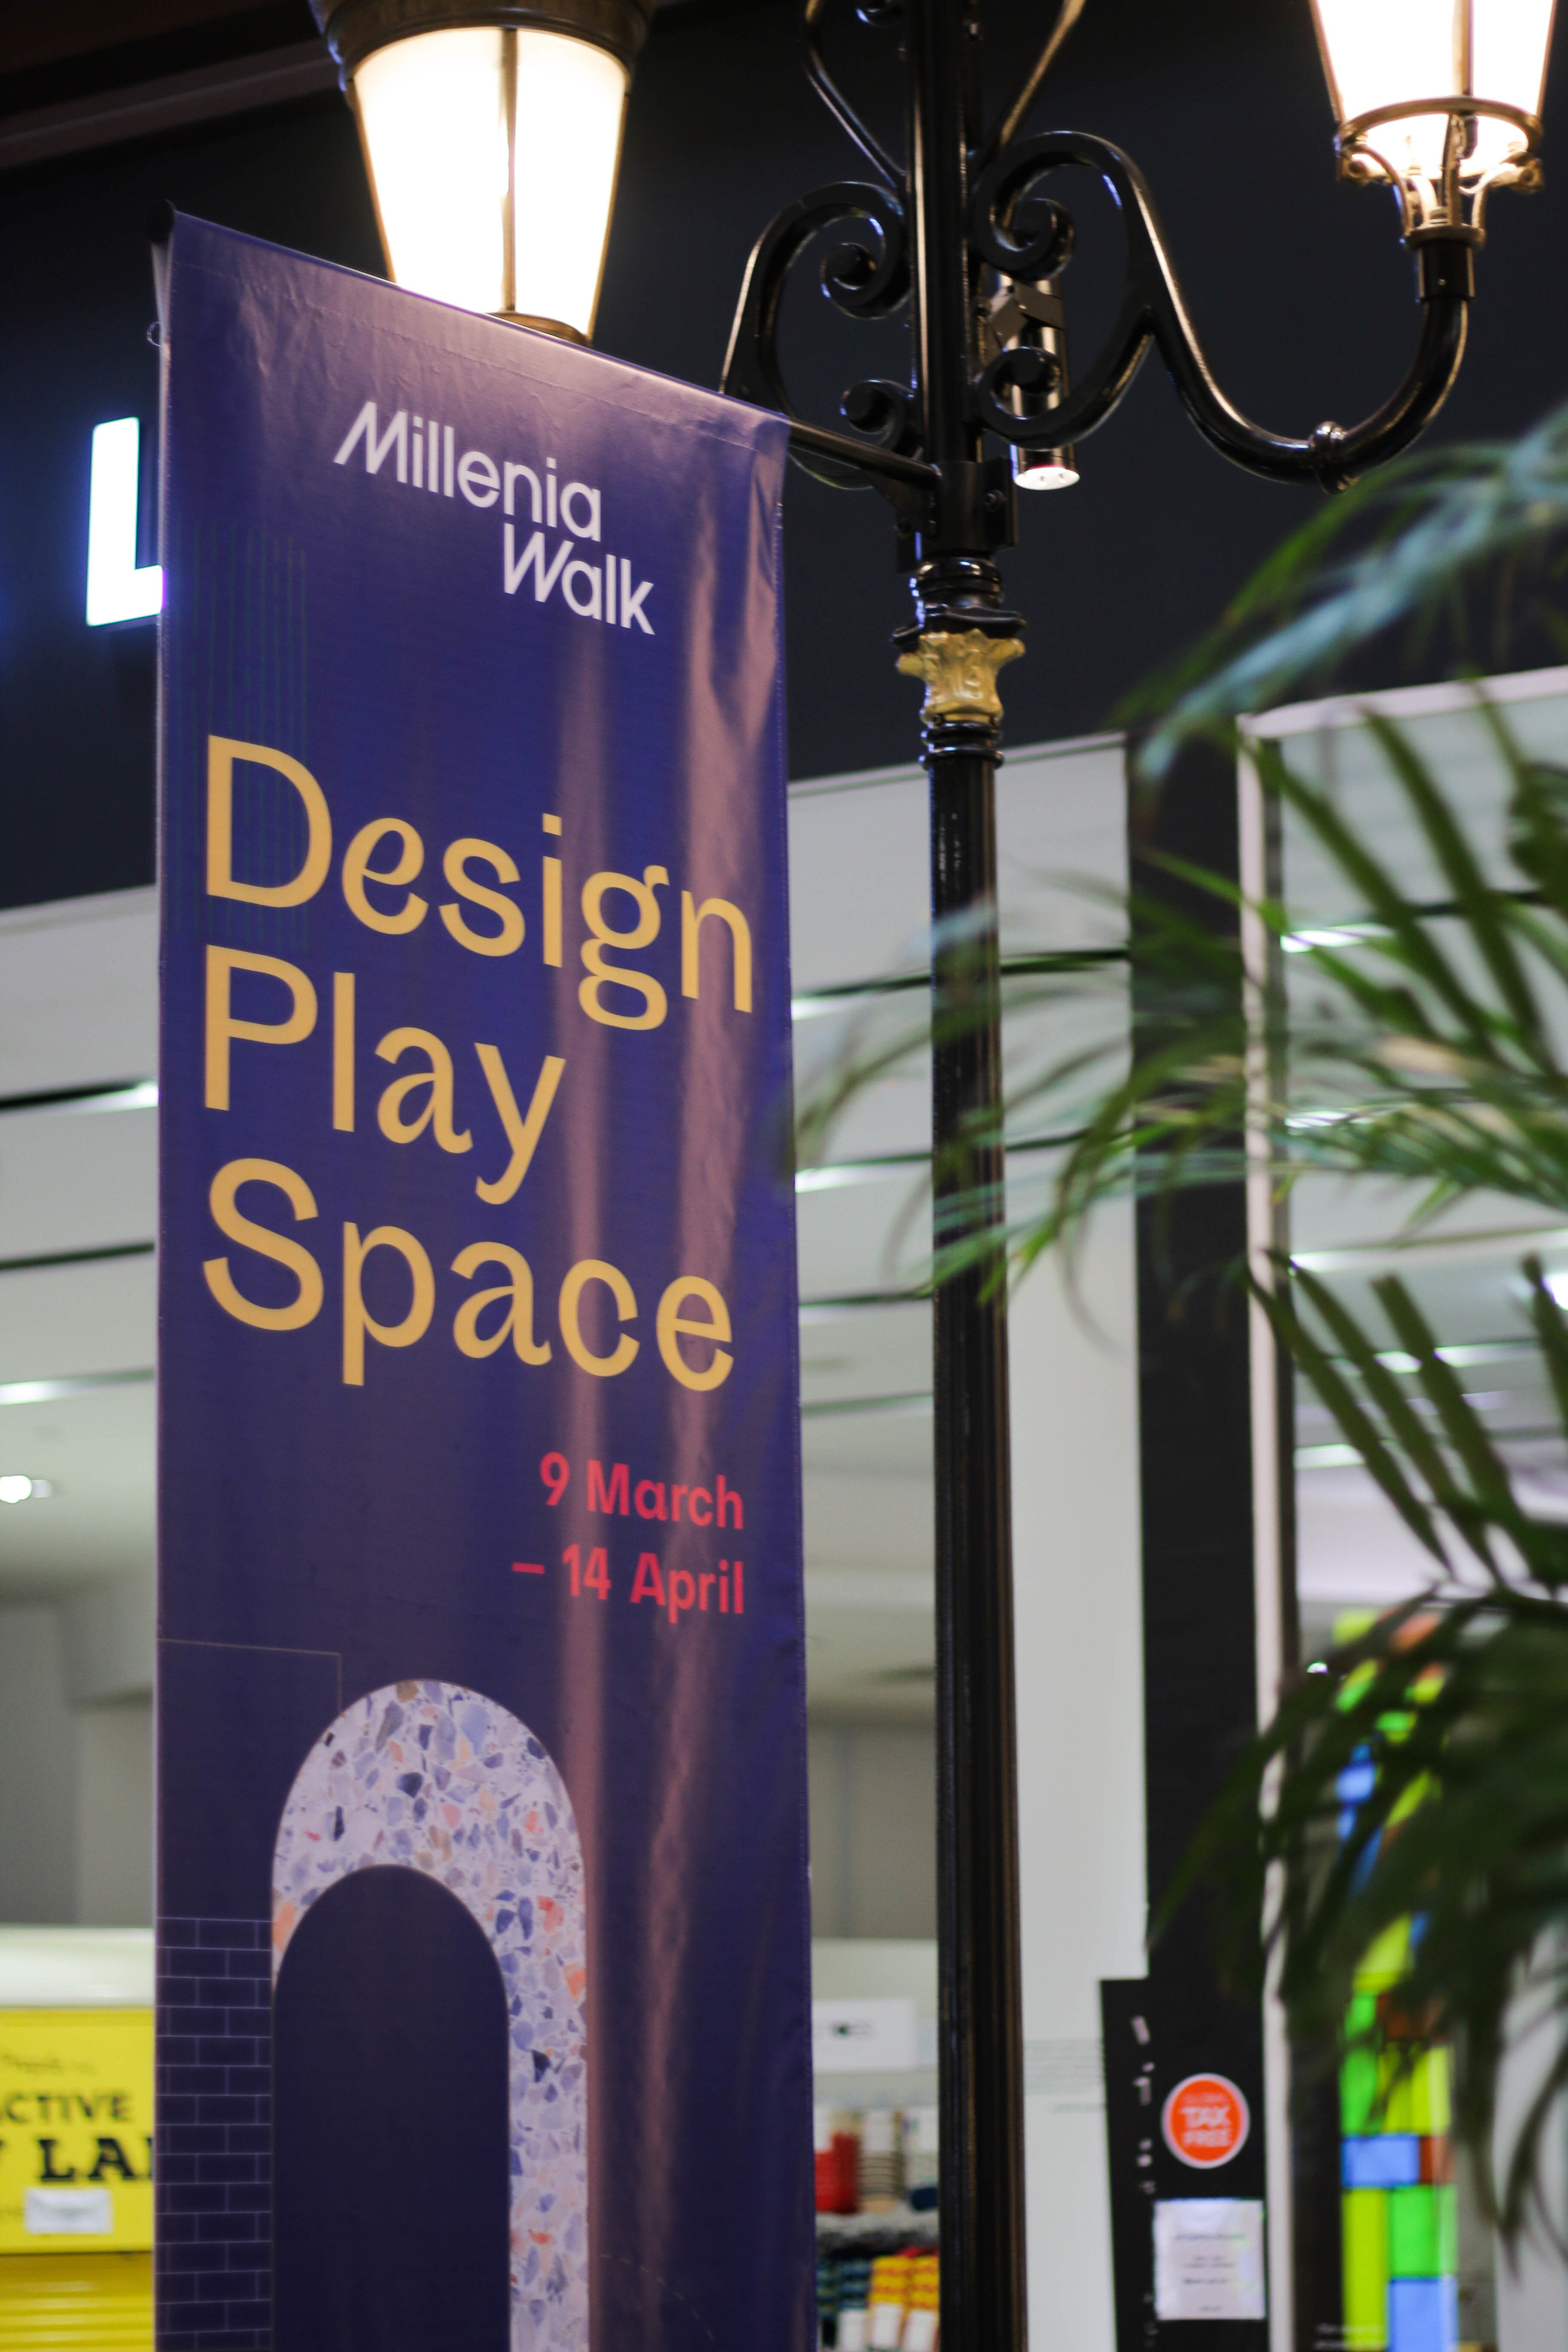 outeredit - millenia walk design play space - banner